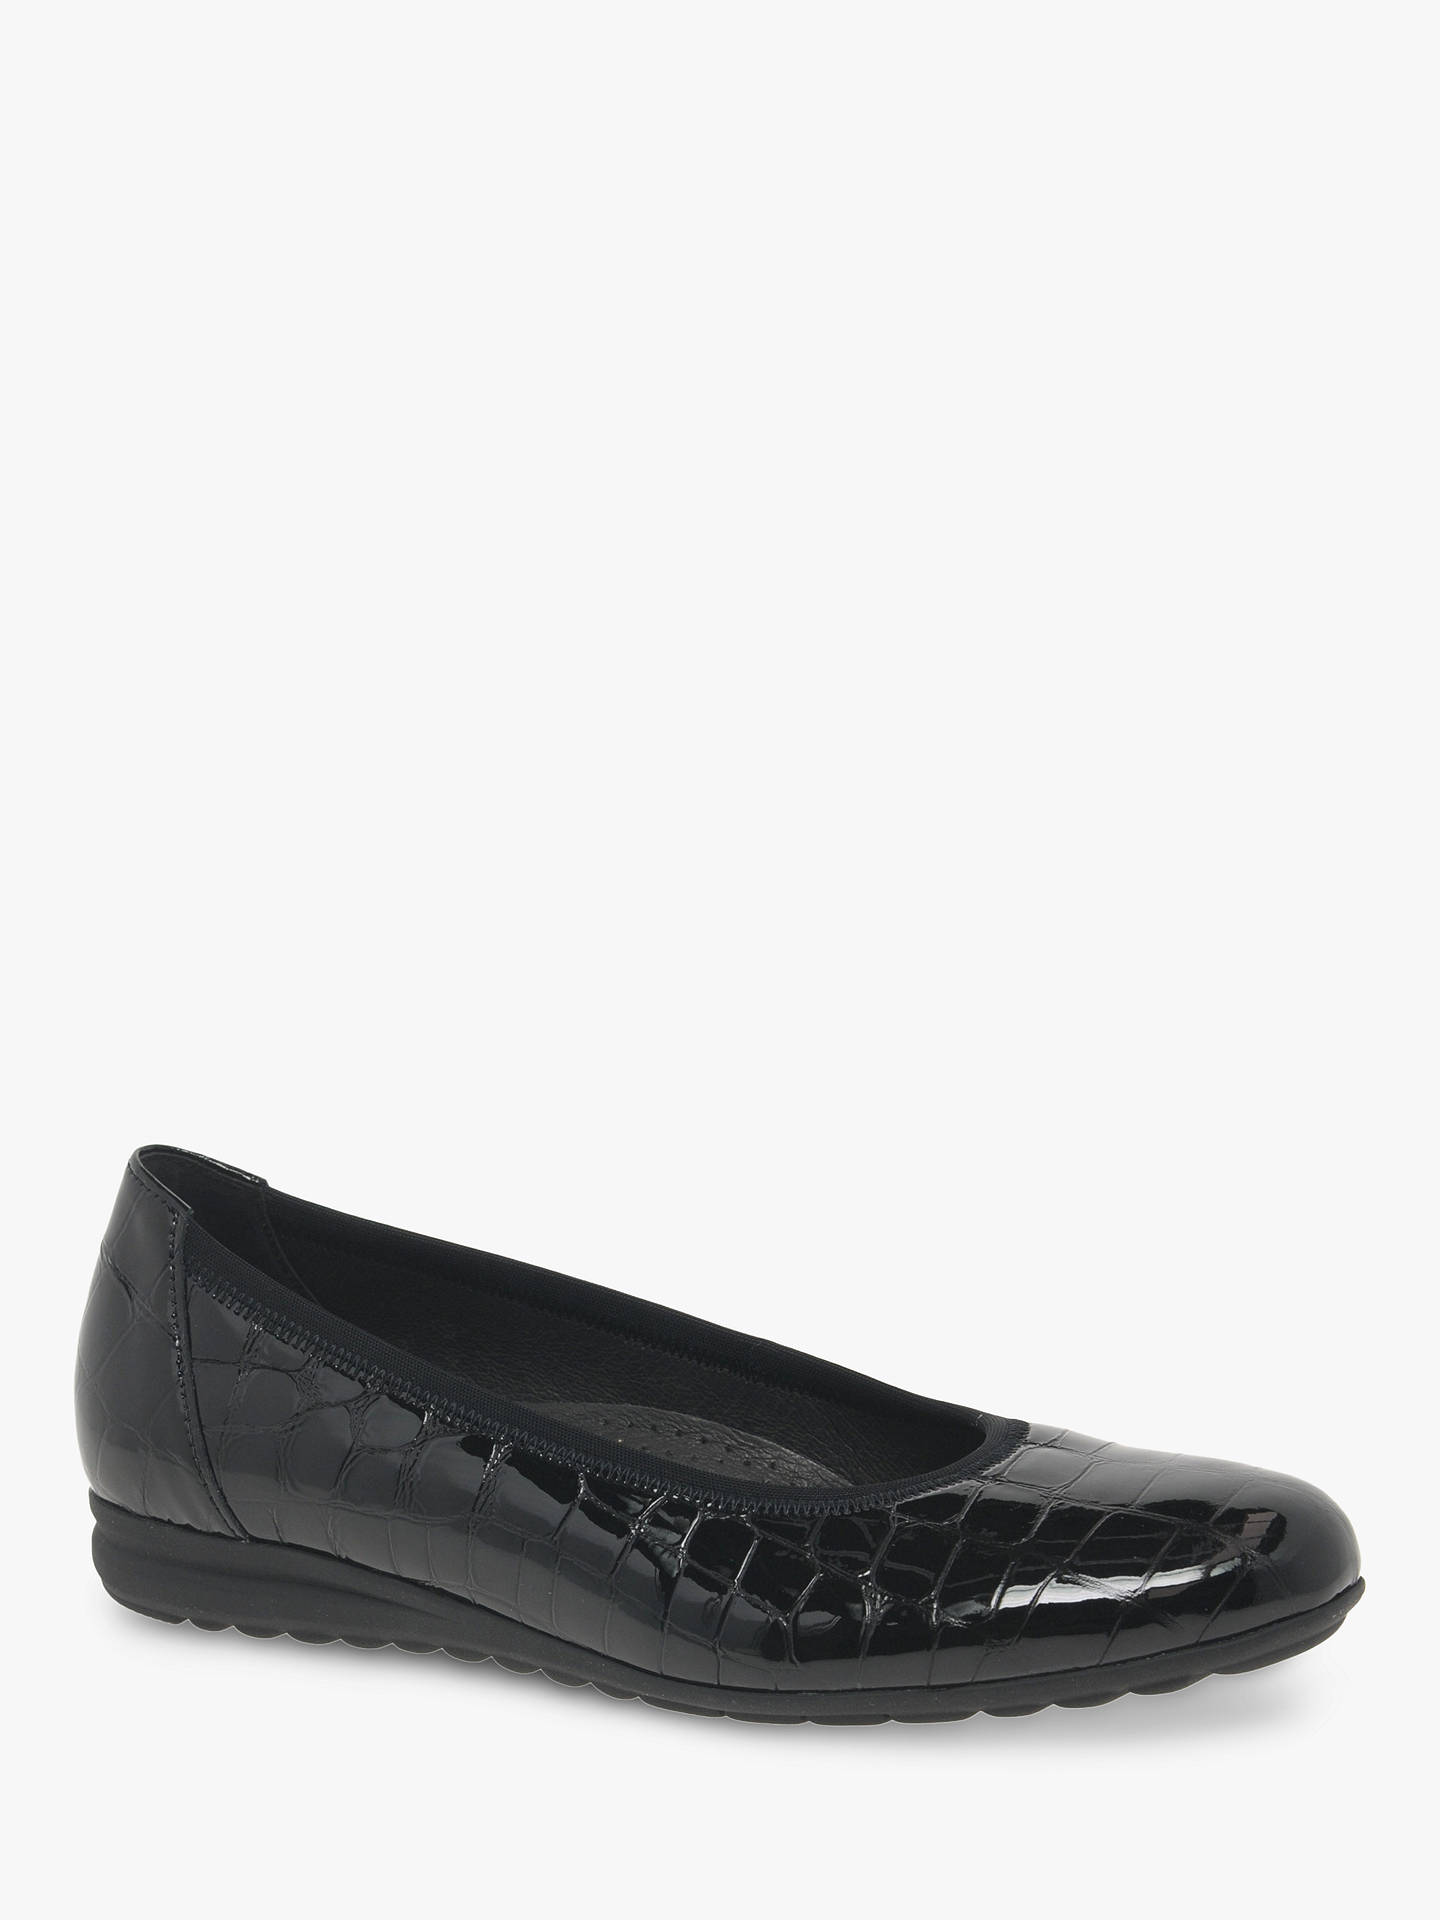 b5b9bb4b8cd1f Buy Gabor Splash Wide Fit Patent Leather Pumps, Black, 3 Online at  johnlewis.